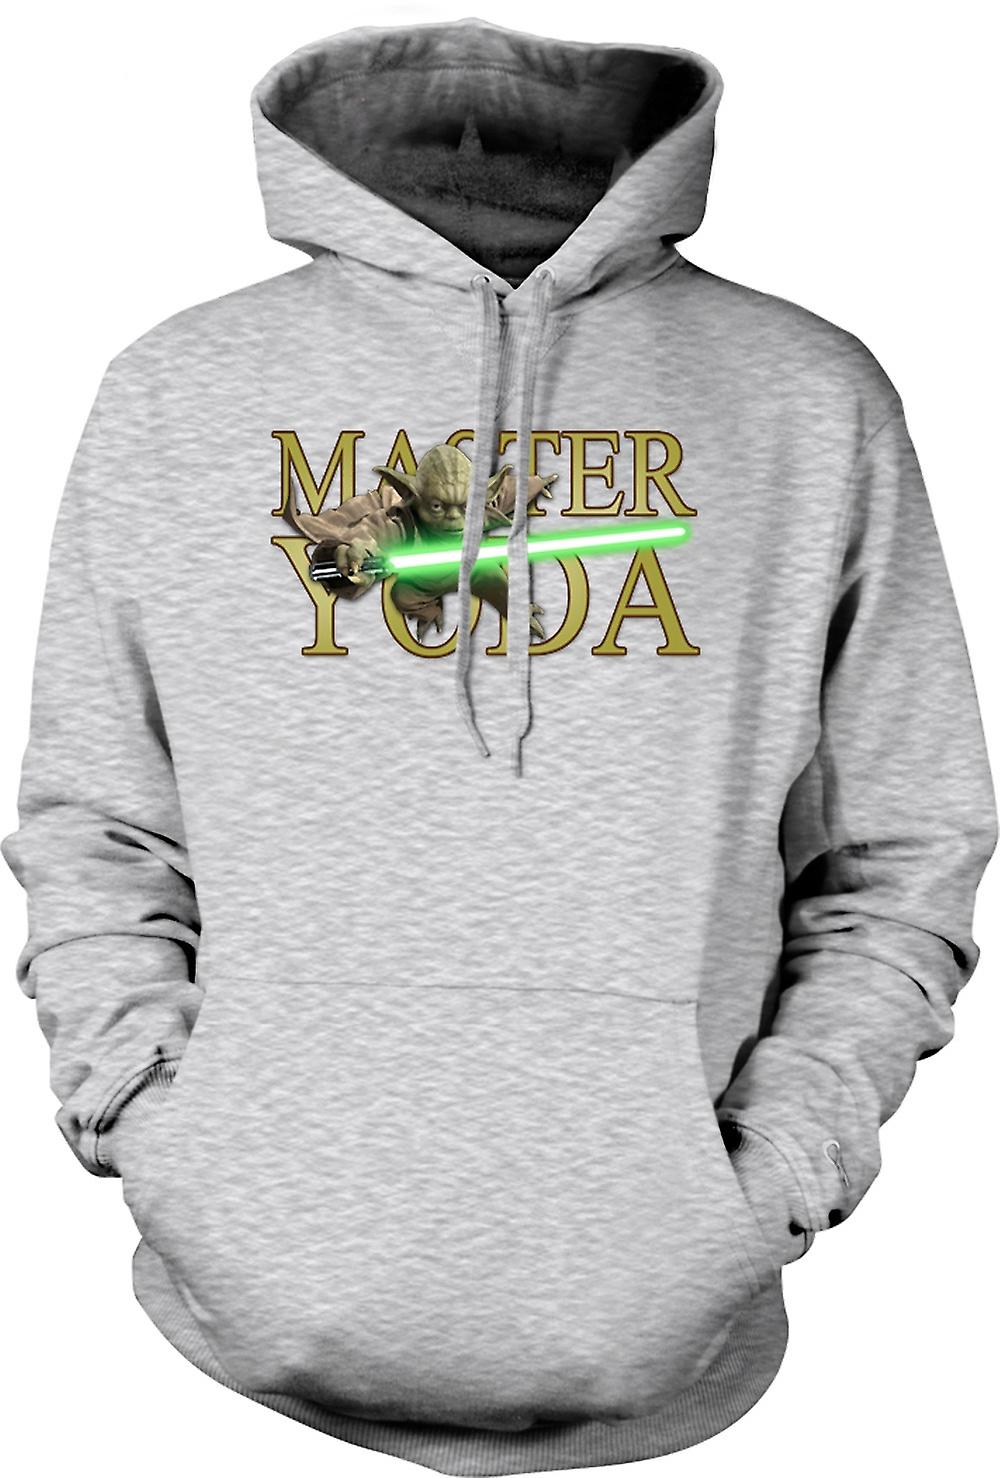 Mens Hoodie - Master Yoda - Jedi - Star Wars - Movie